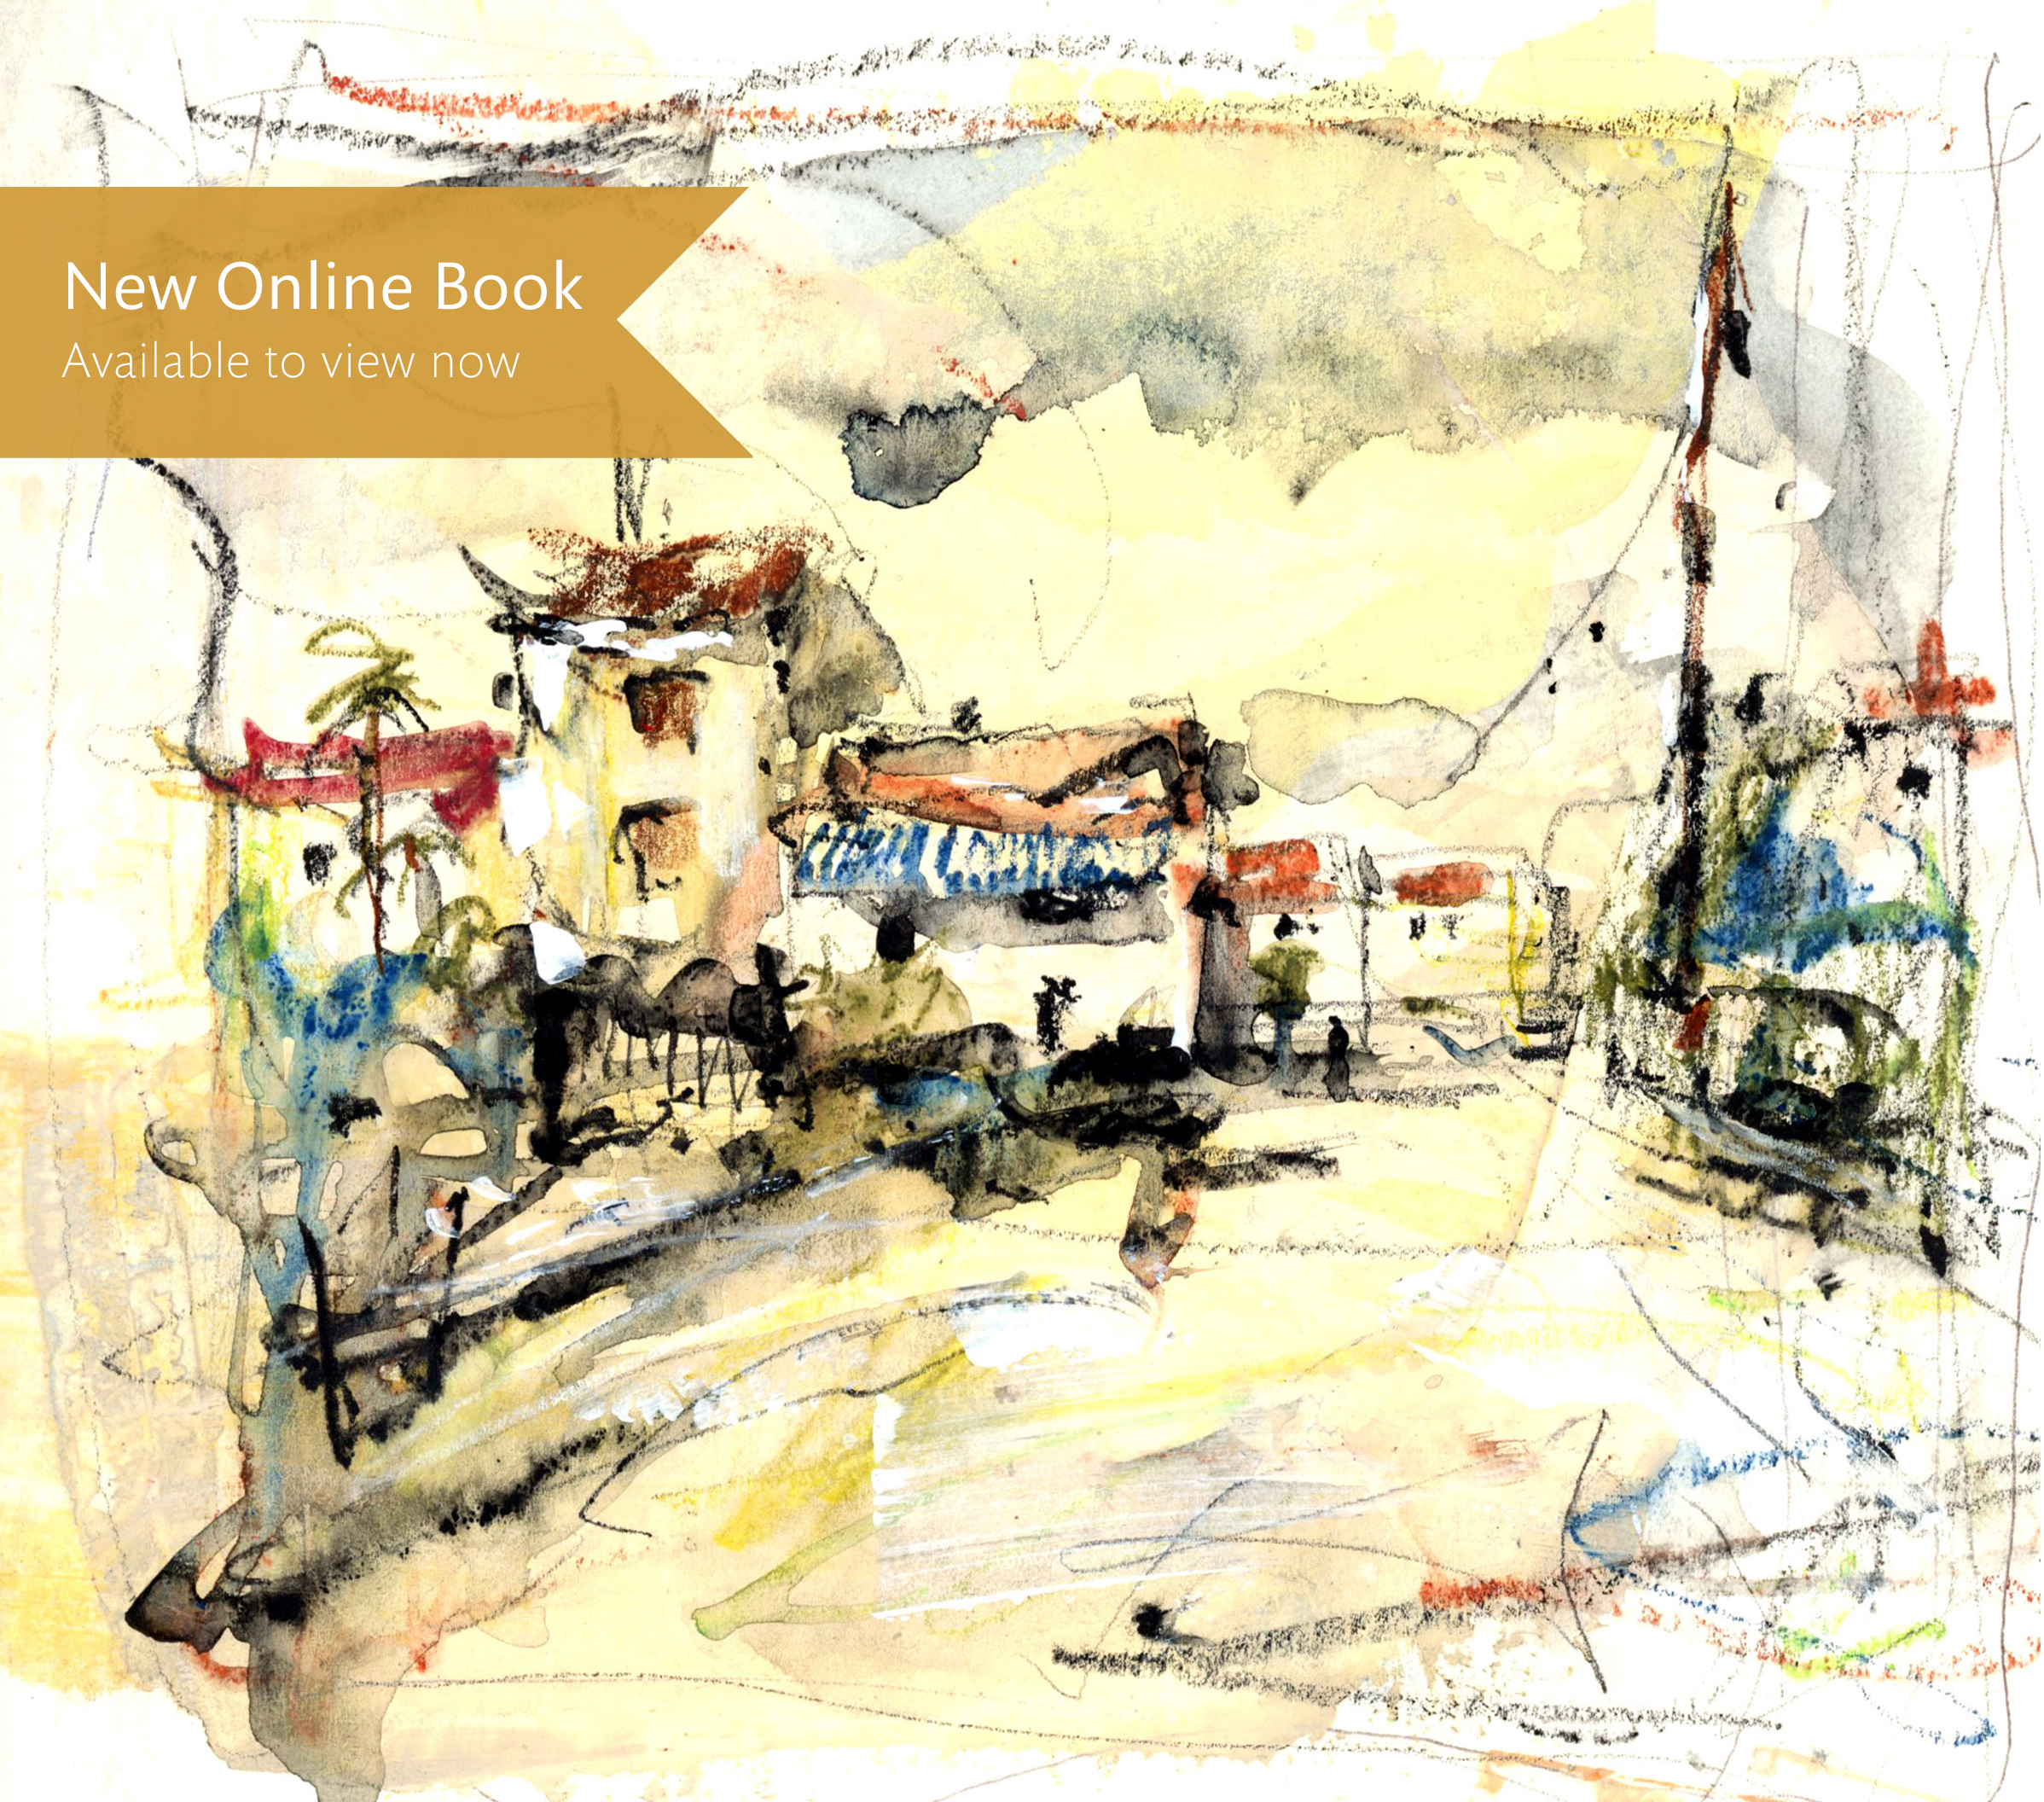 New Online Book - Sketches of Europe and Beyond, Andrew Hood